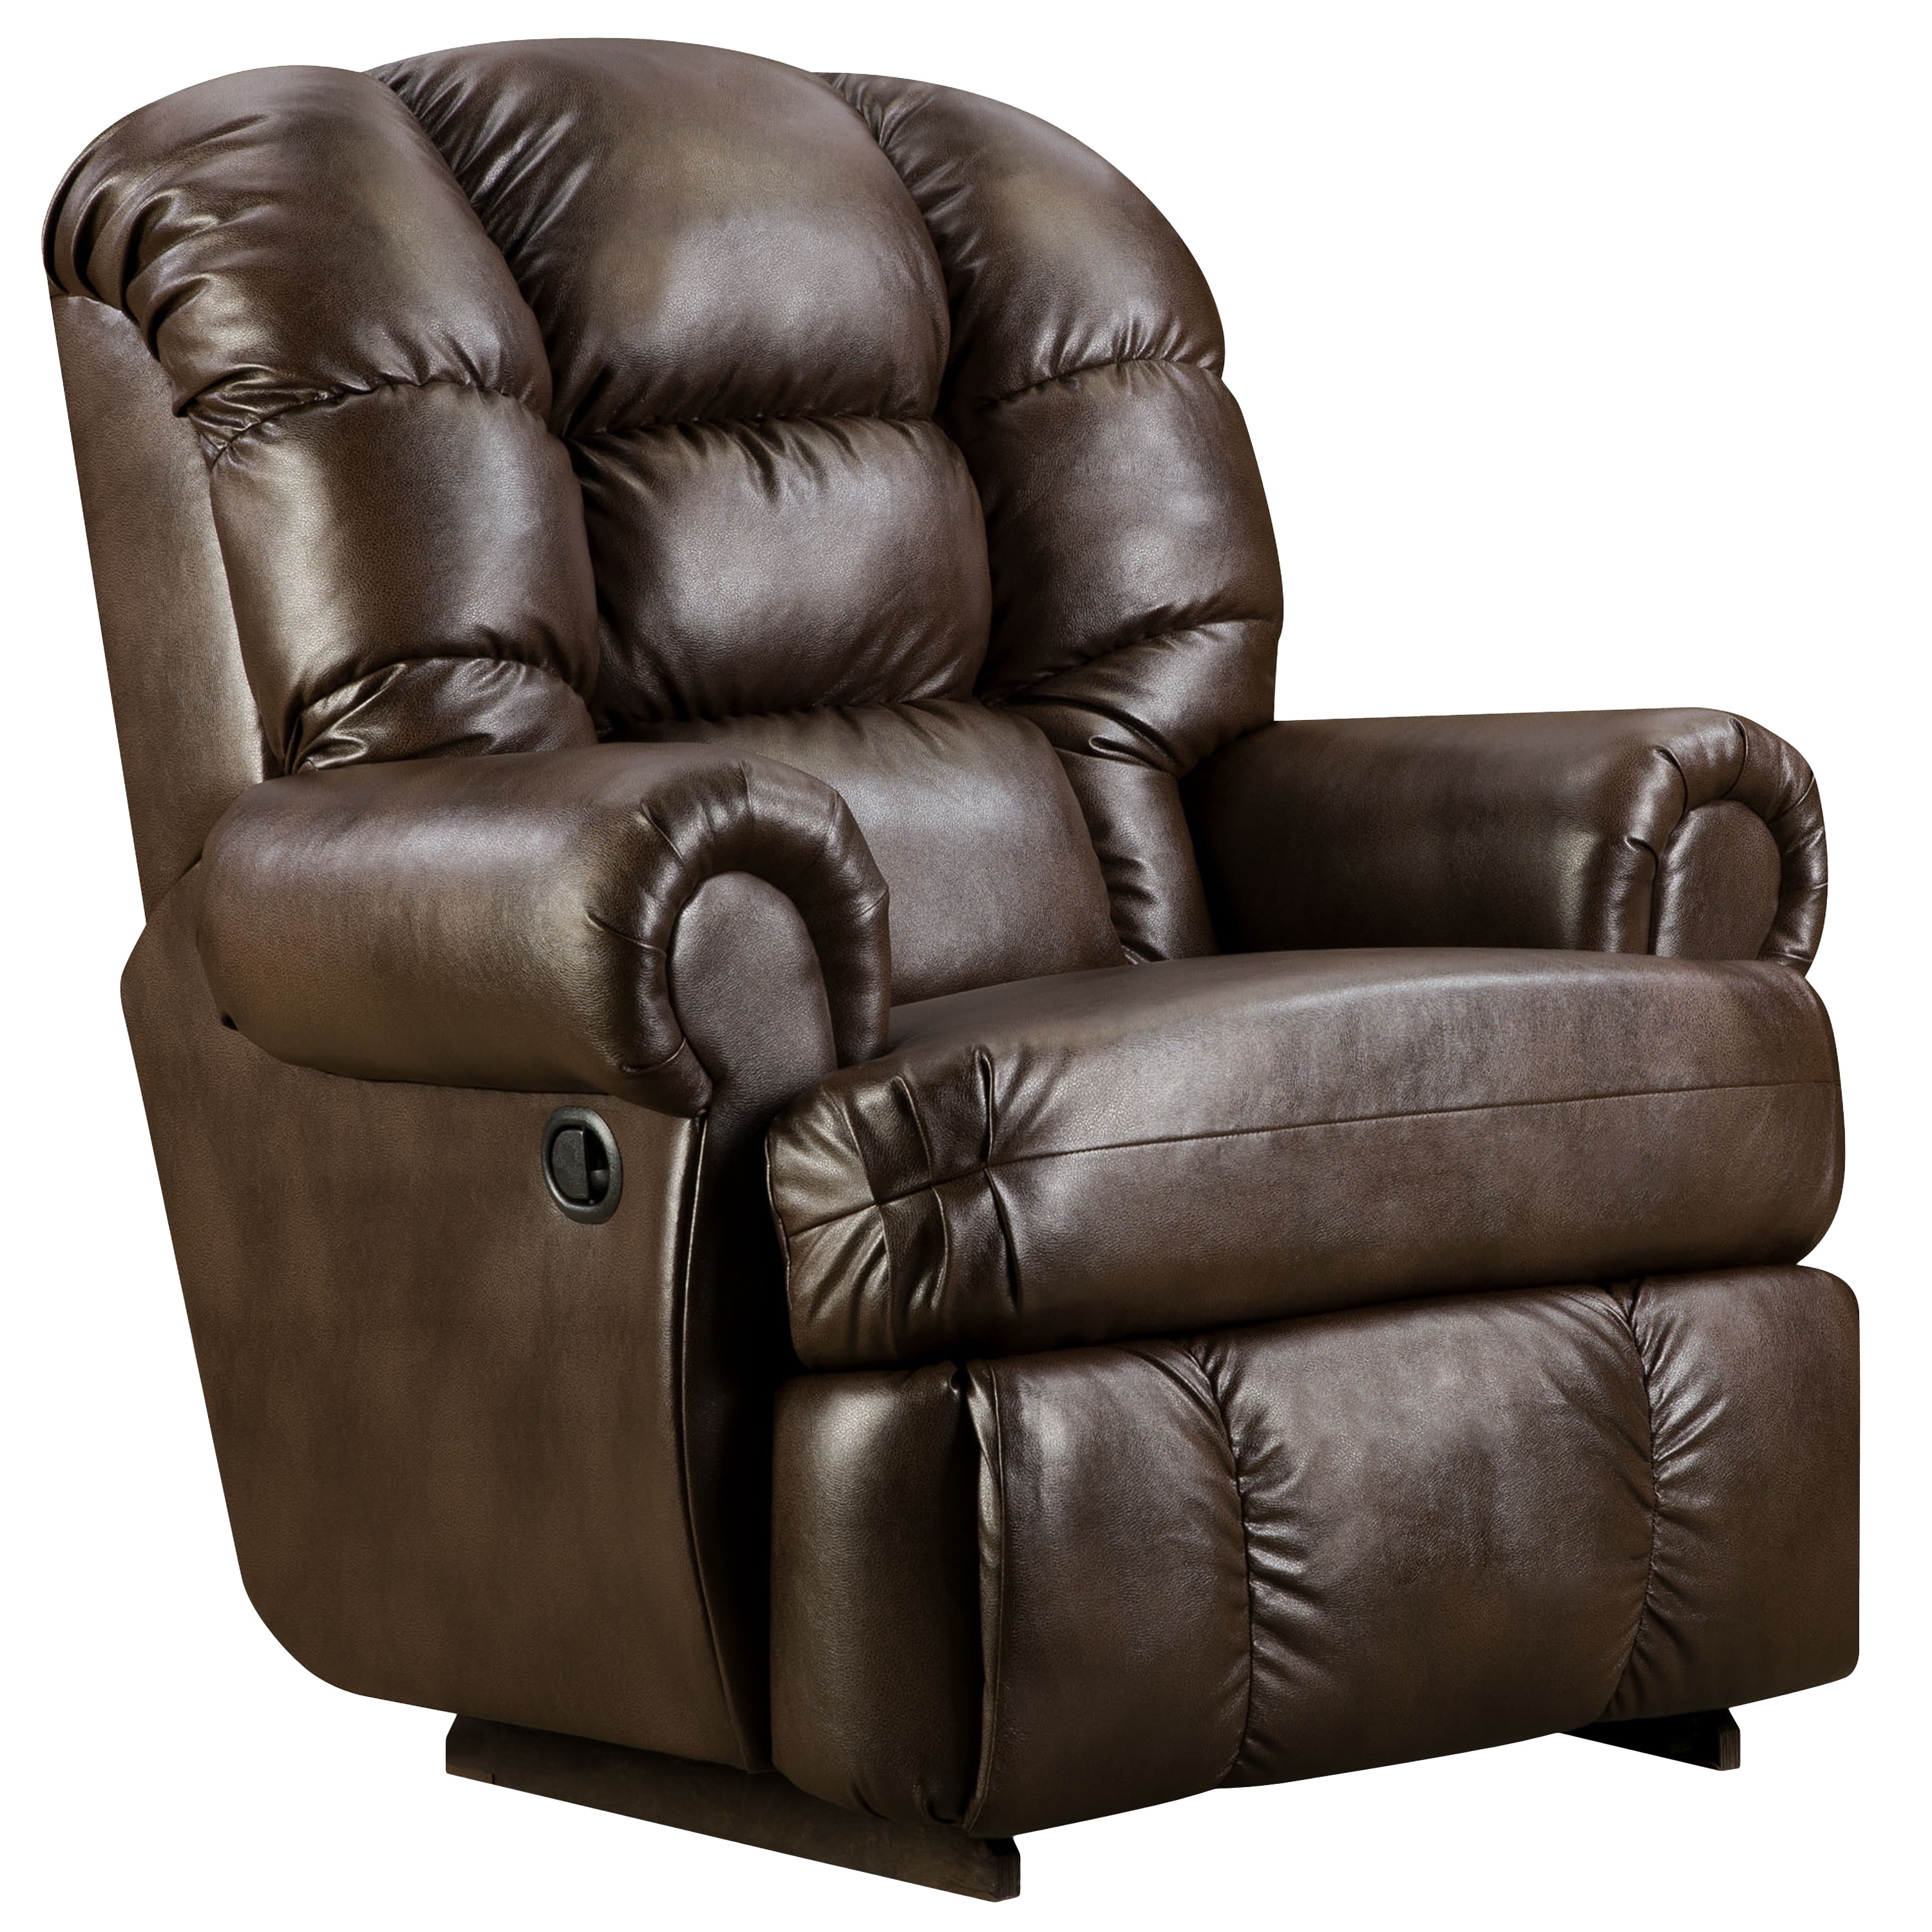 Chairs For Tall Man Big And Tall 350 Pound Capacity Loggins Espresso Leathersoft Recliner